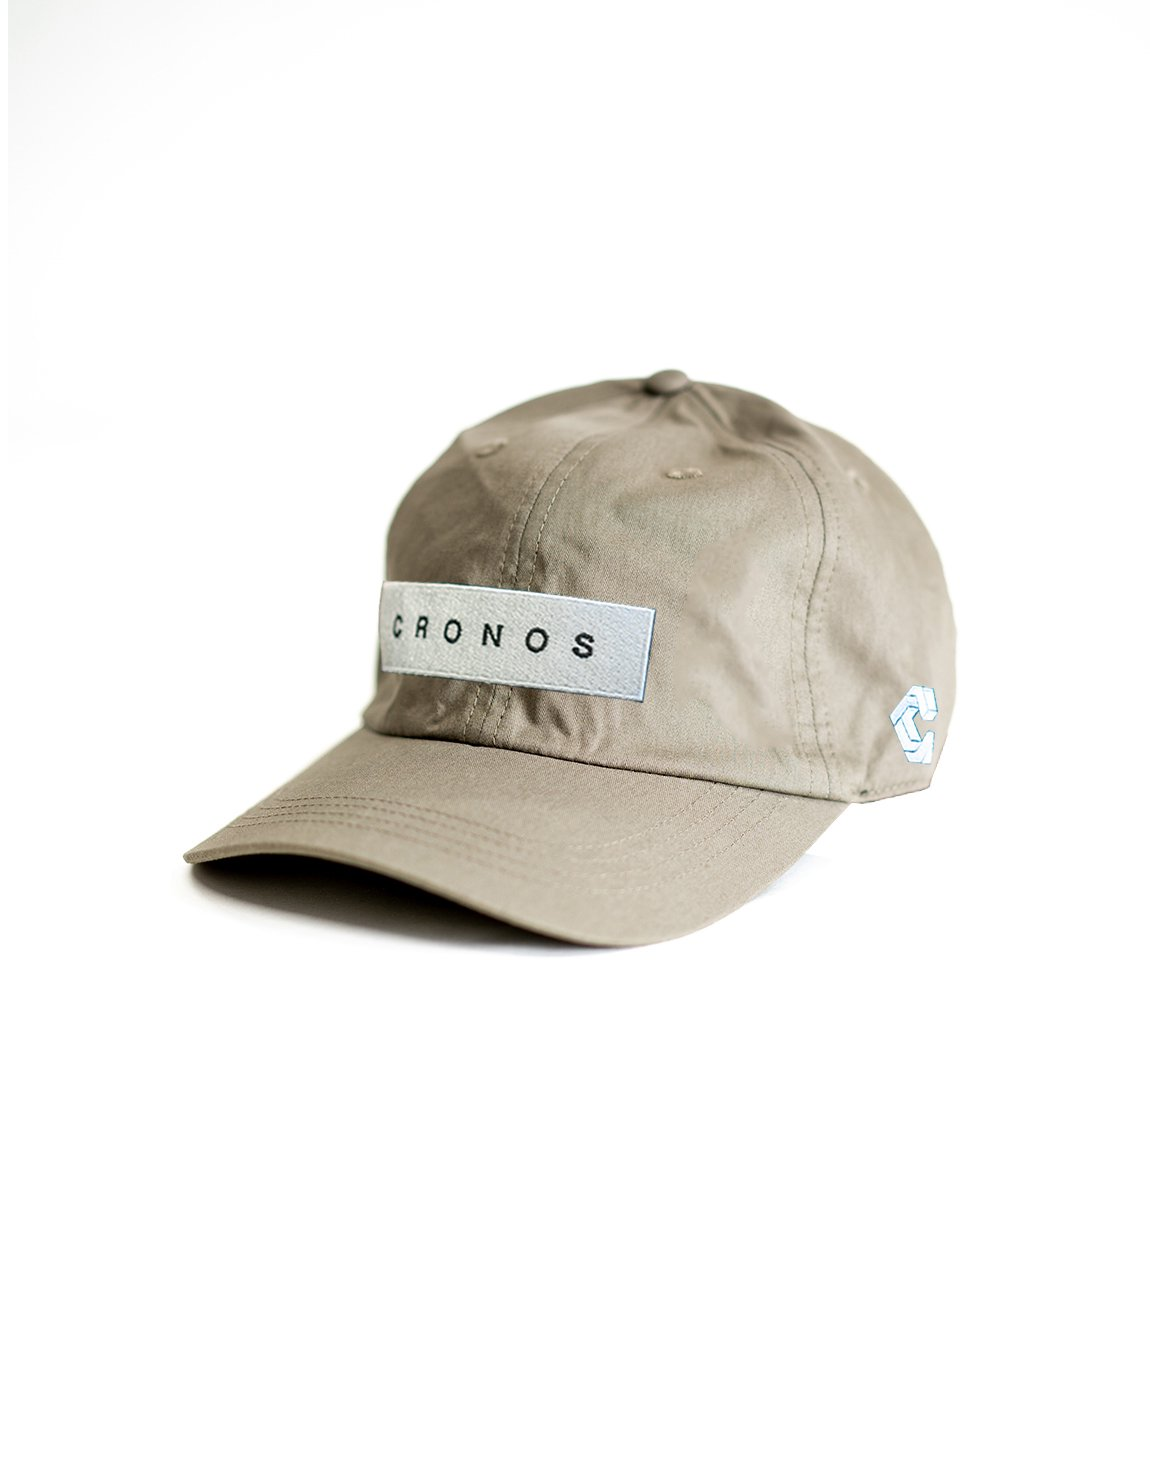 <img class='new_mark_img1' src='https://img.shop-pro.jp/img/new/icons1.gif' style='border:none;display:inline;margin:0px;padding:0px;width:auto;' />CRONOS BOX LOGO CAP 【GRAY】